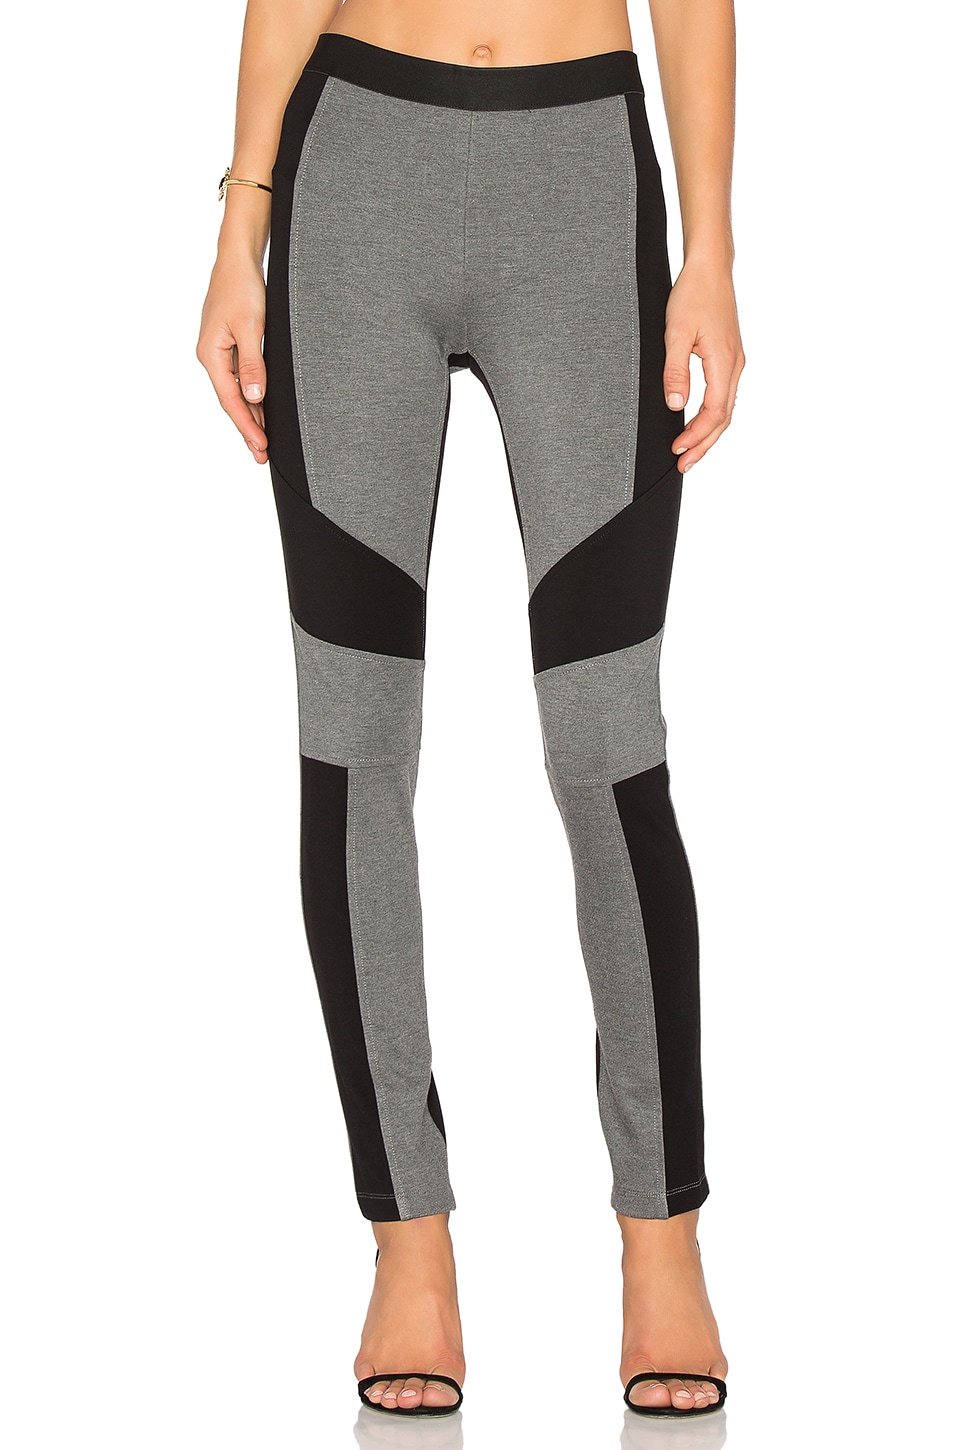 BCBGMAXAZRIA Colorblock Legging in Medium Heather Grey Black Combo